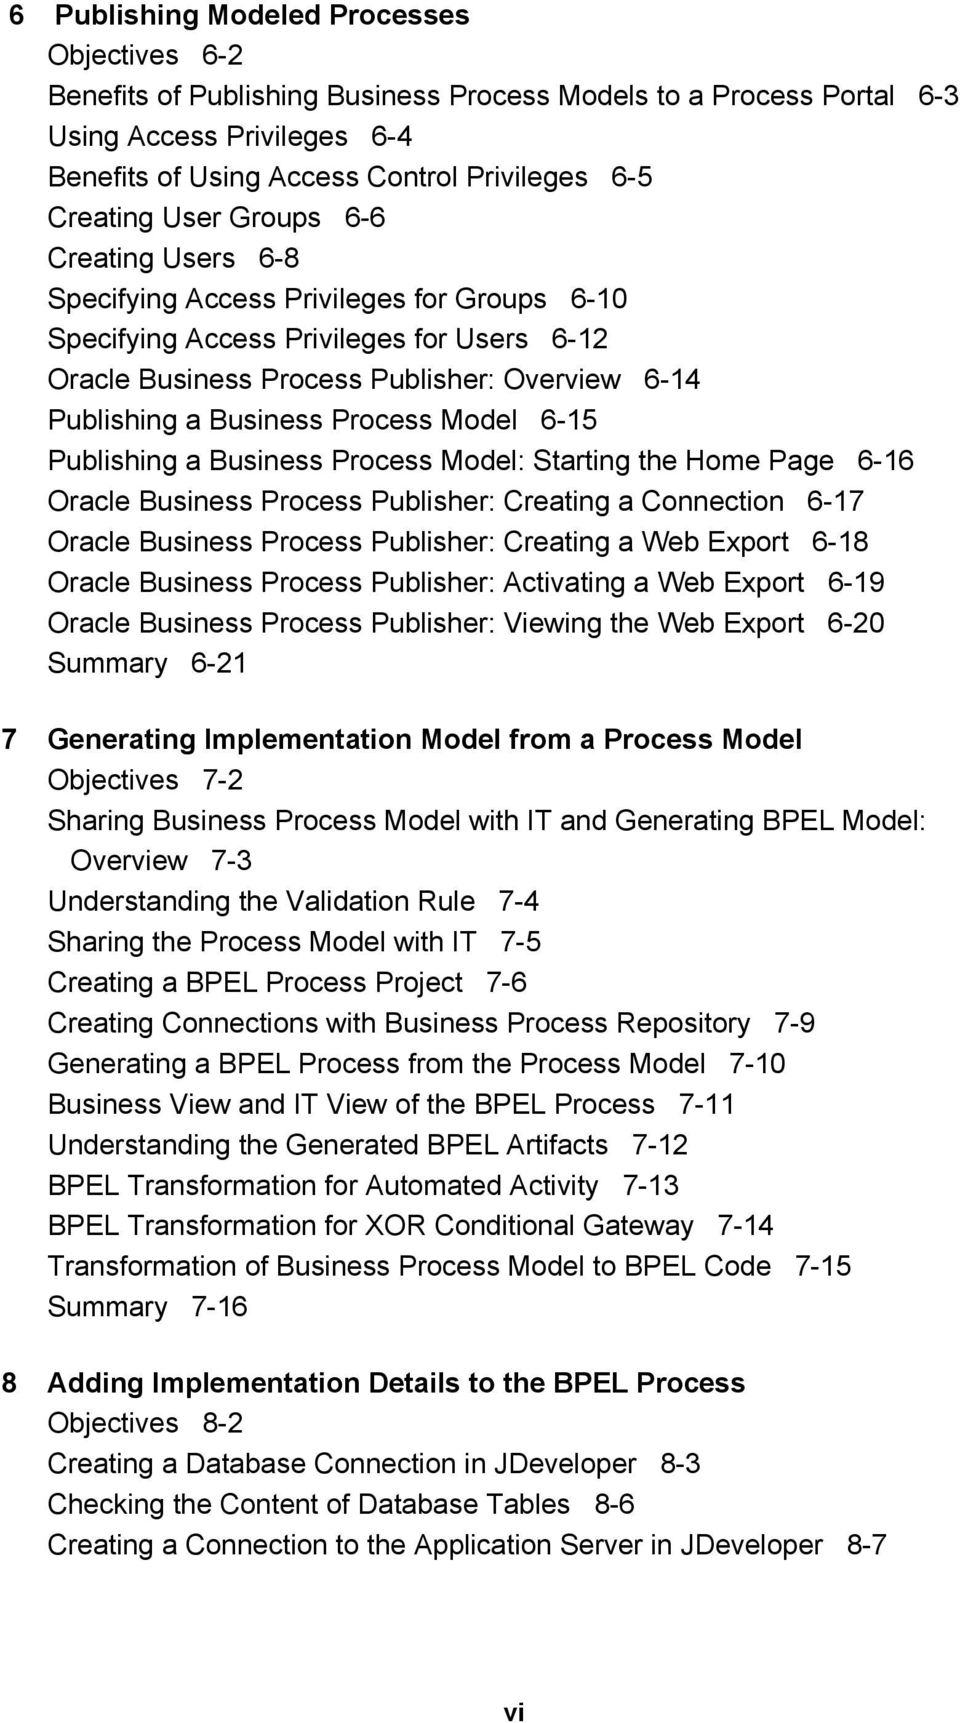 Business Process Model 6-15 Publishing a Business Process Model: Starting the Home Page 6-16 Oracle Business Process Publisher: Creating a Connection 6-17 Oracle Business Process Publisher: Creating